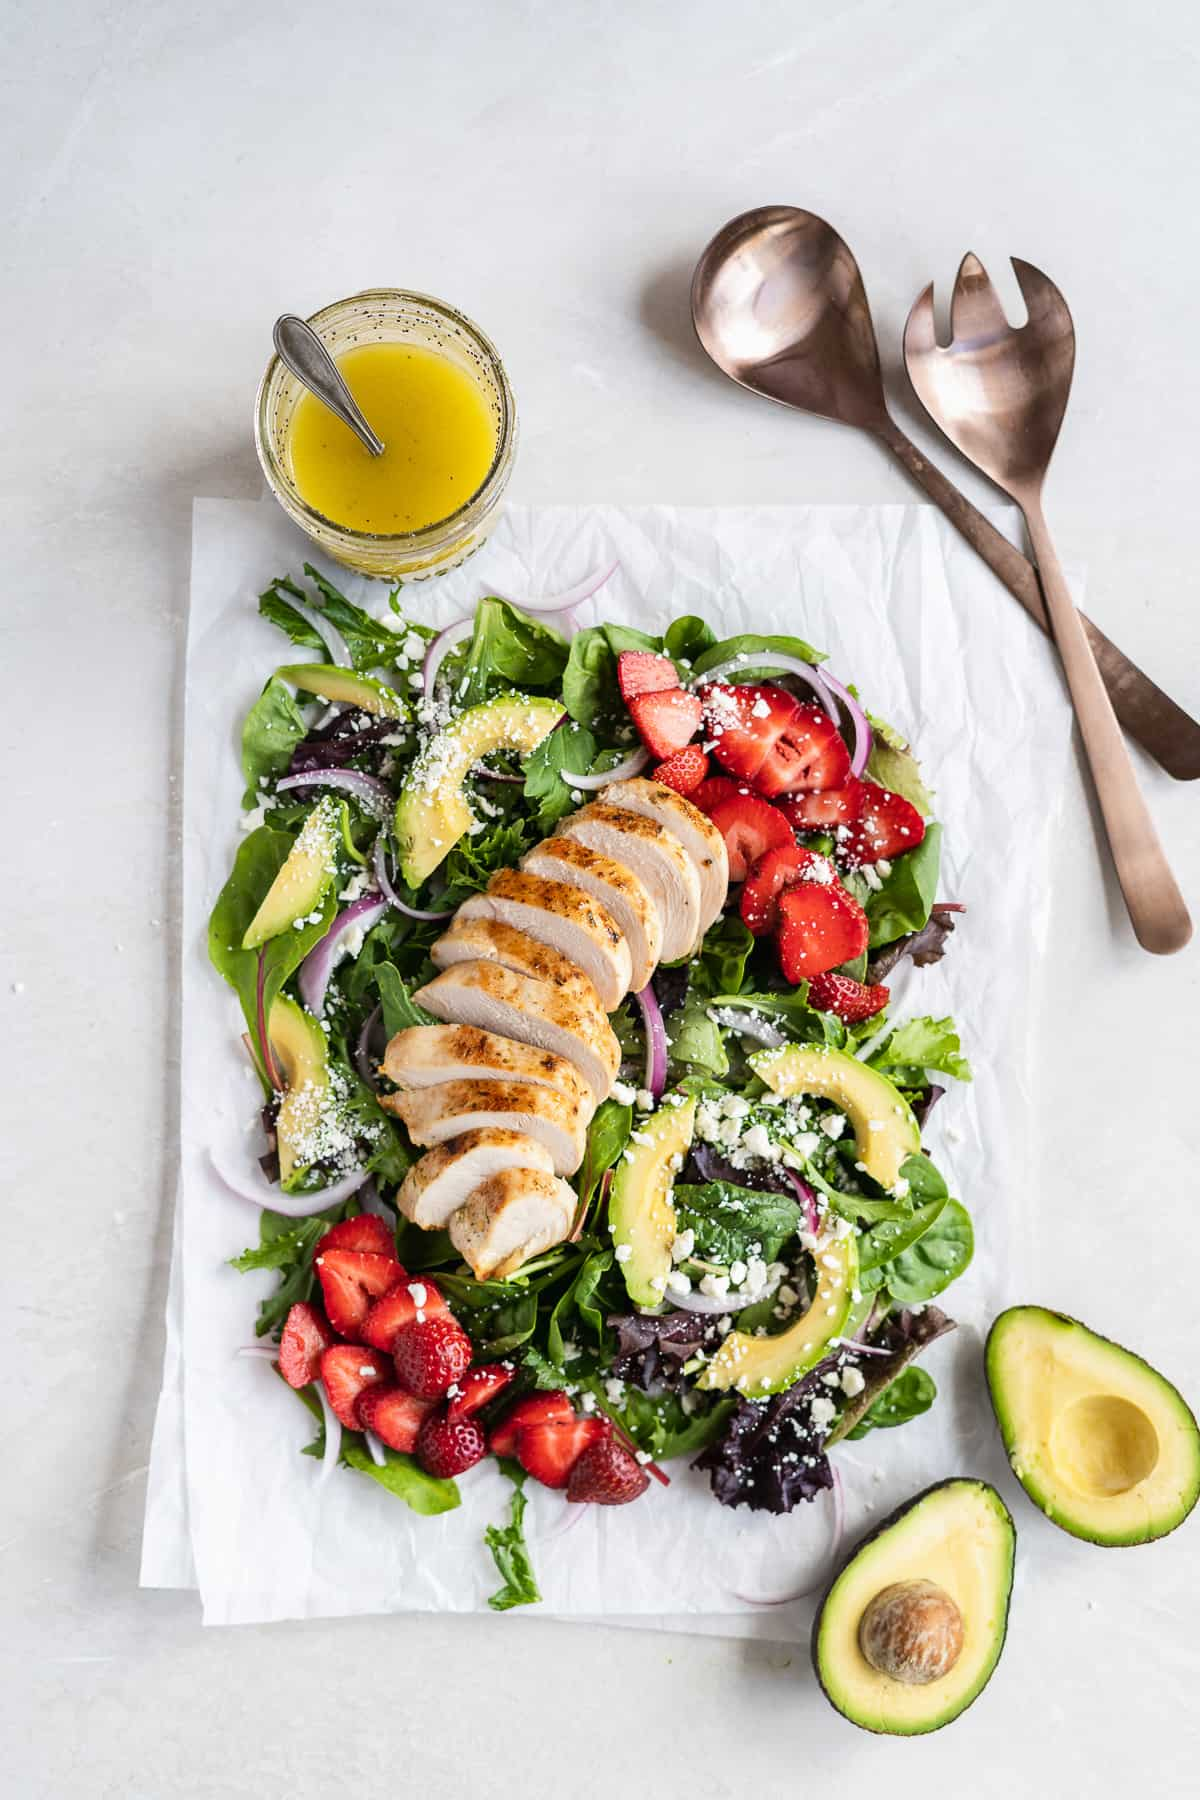 Overhead photo of the Summer Strawberry Goat Cheese Salad with Healthy Poppy Seed Dressing on white parchment paper on a marble slab.  Serving spoons and a jar of dressing are placed nearby.